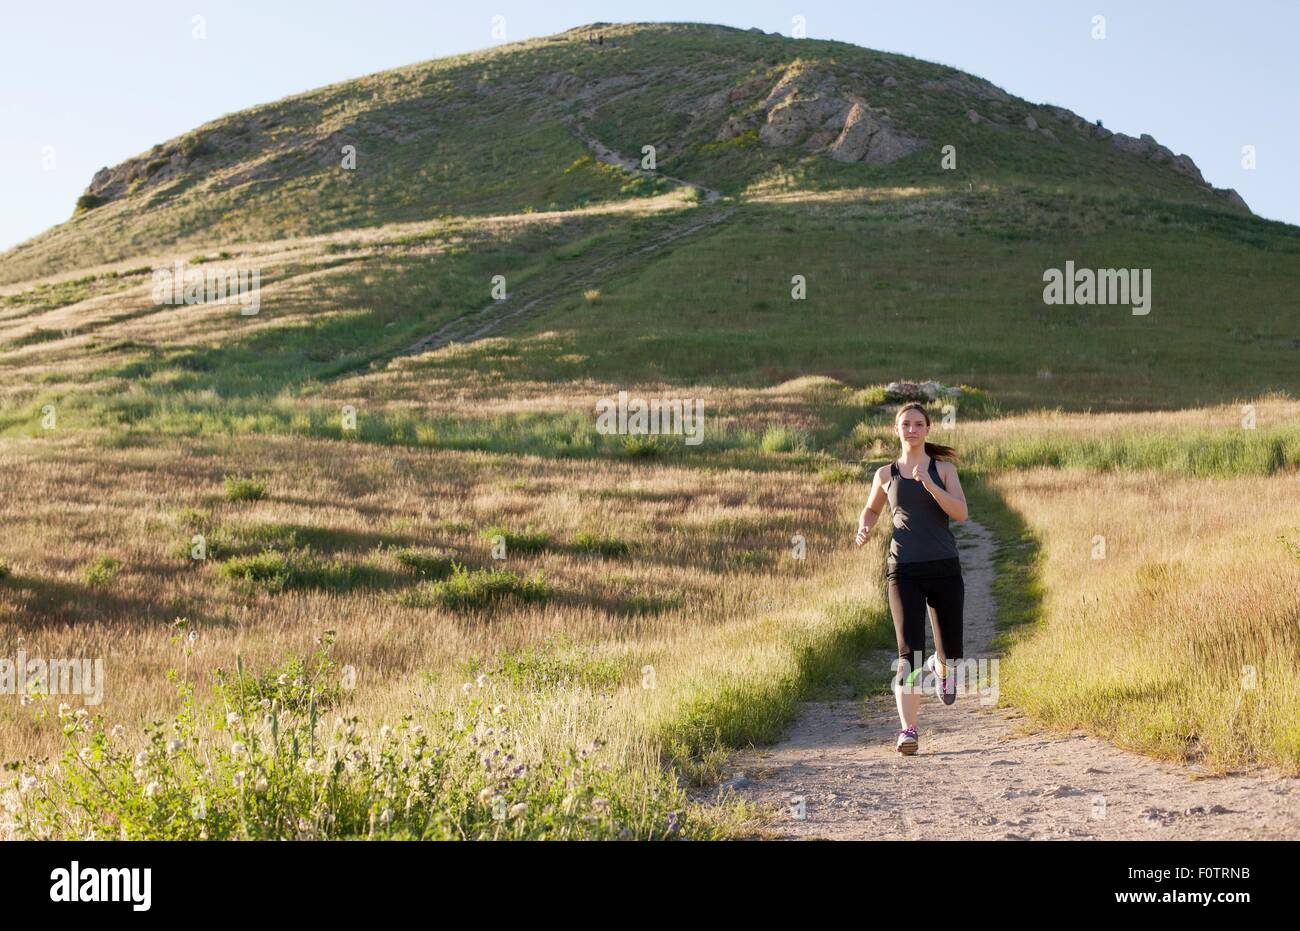 Young woman running on hillside track - Stock Image